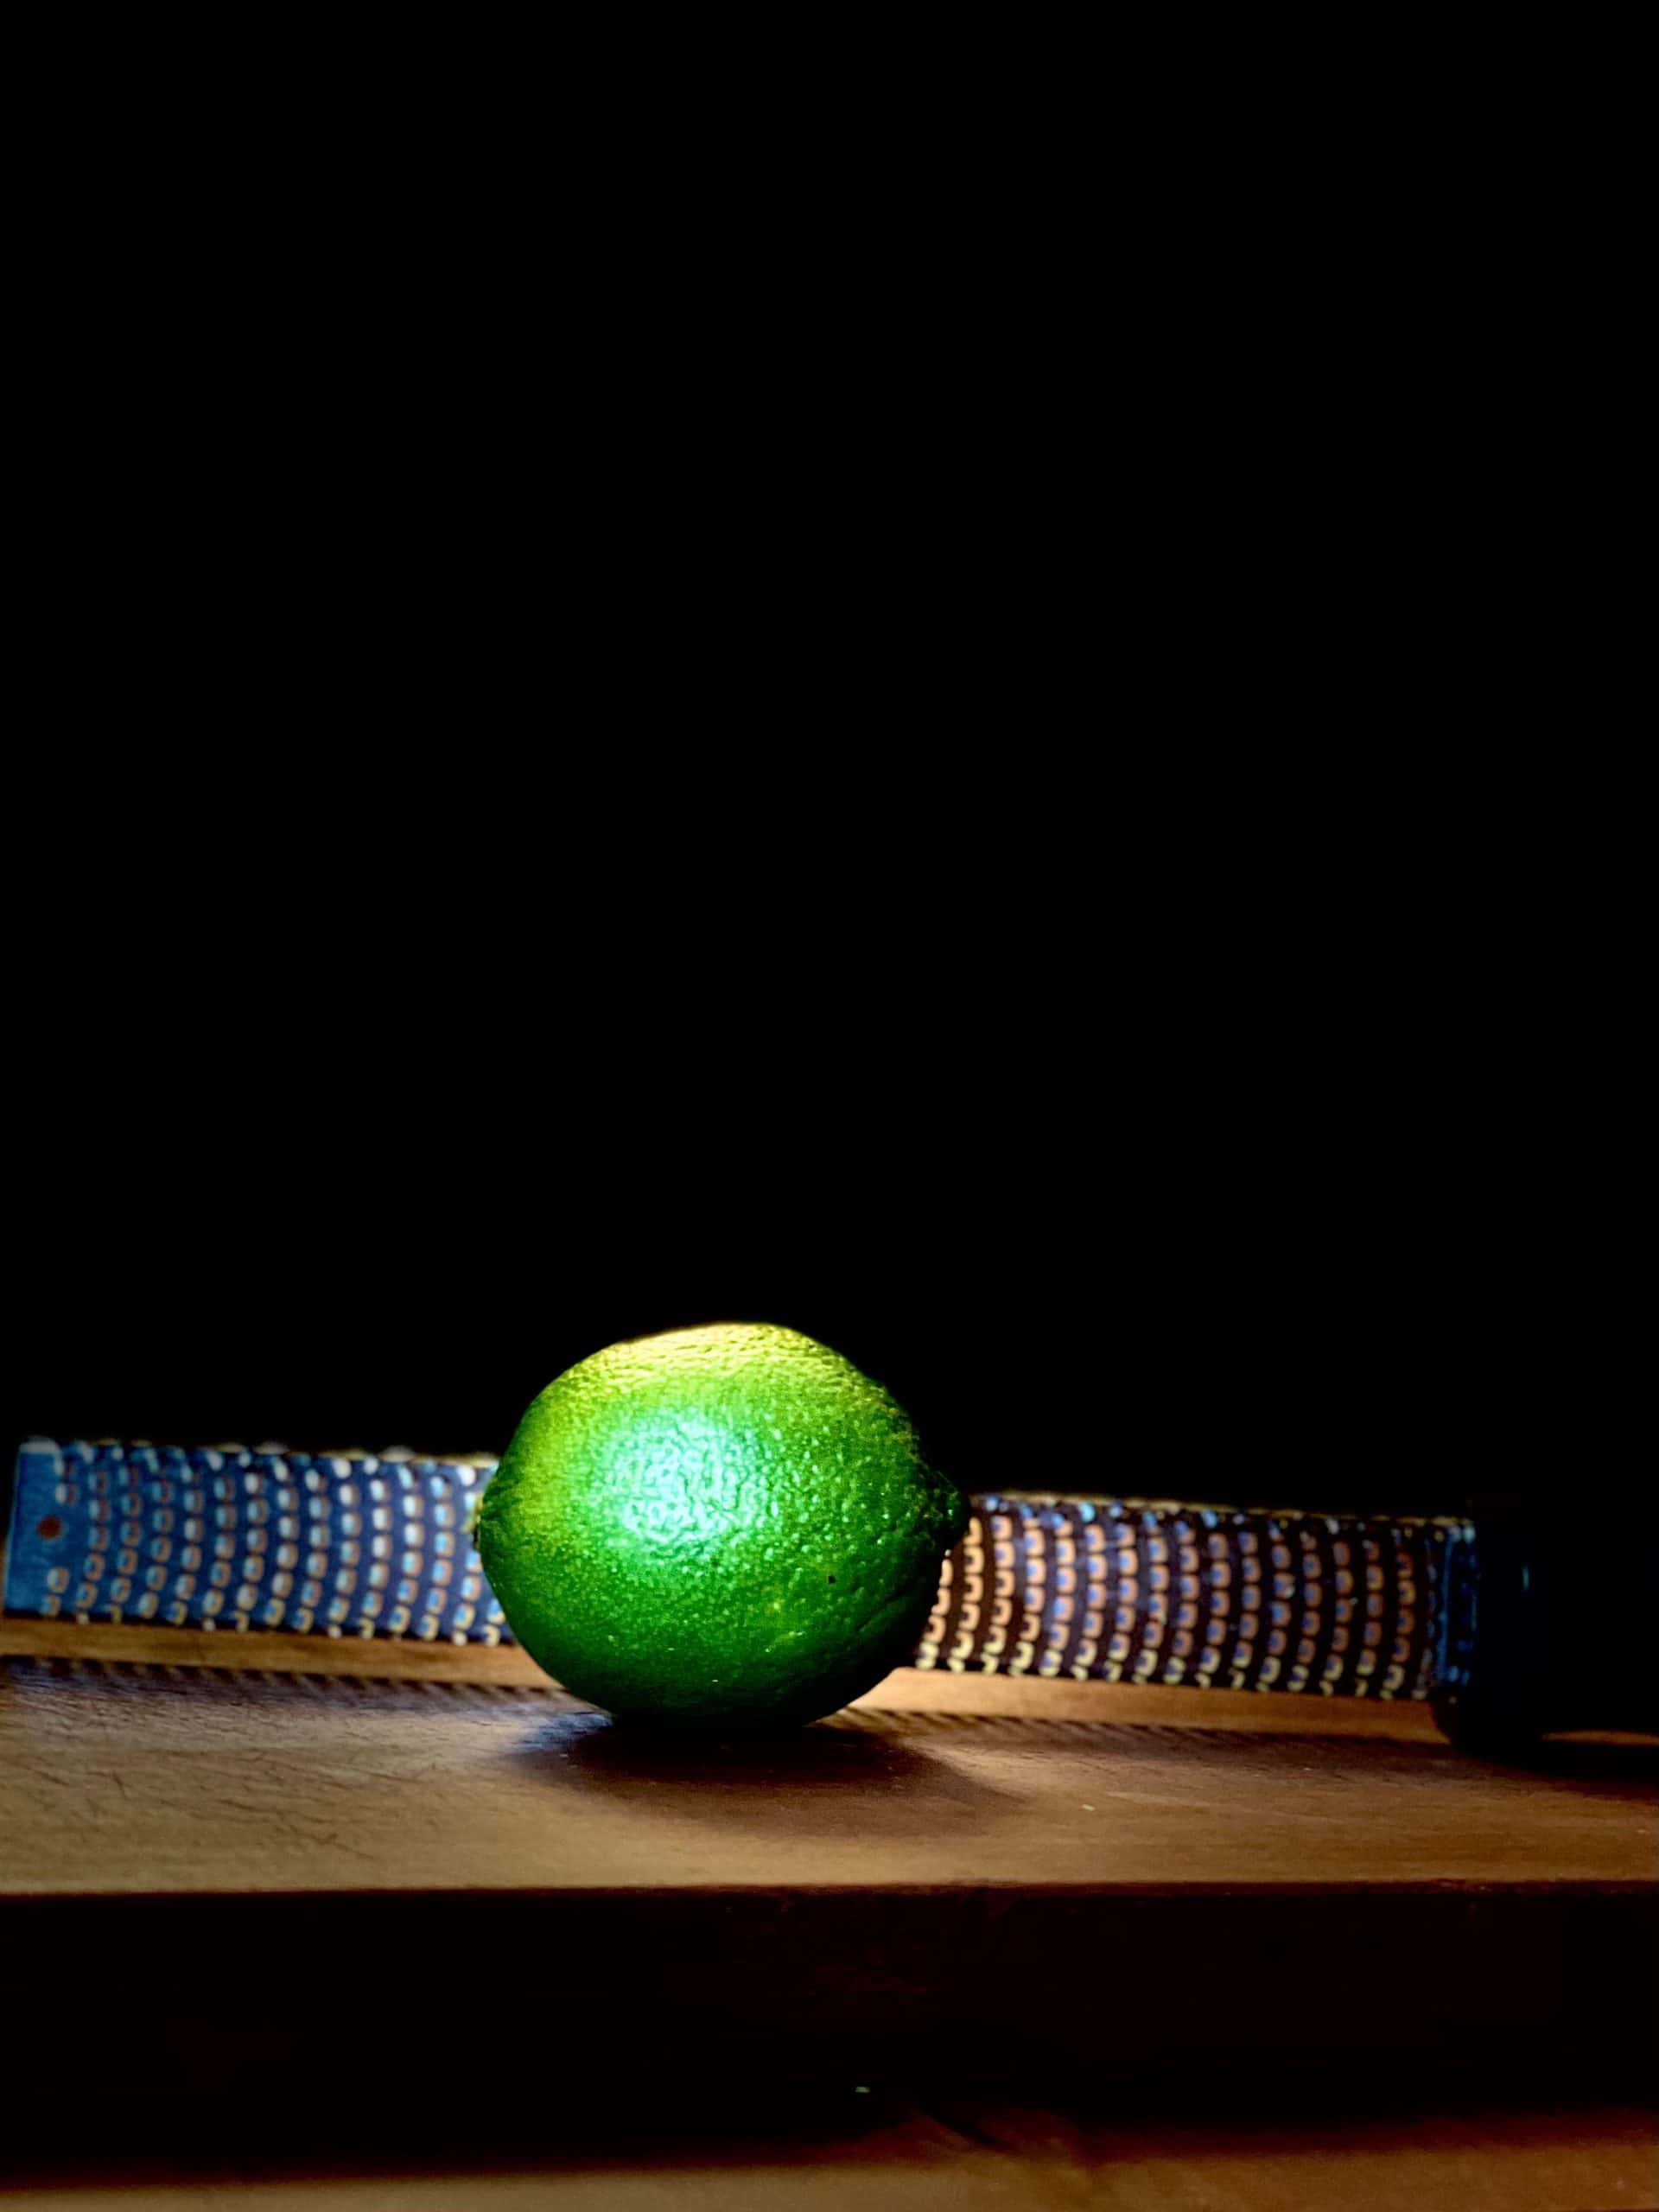 Zesting limes